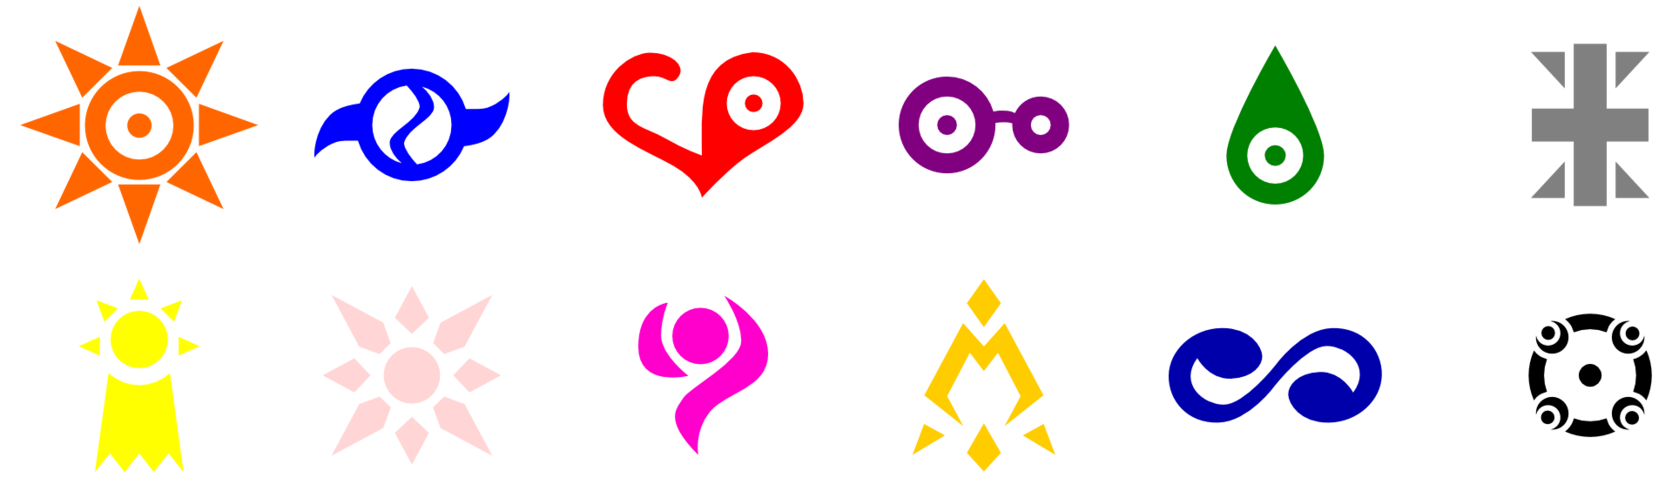 Digimon crest courage png. I ve traced these